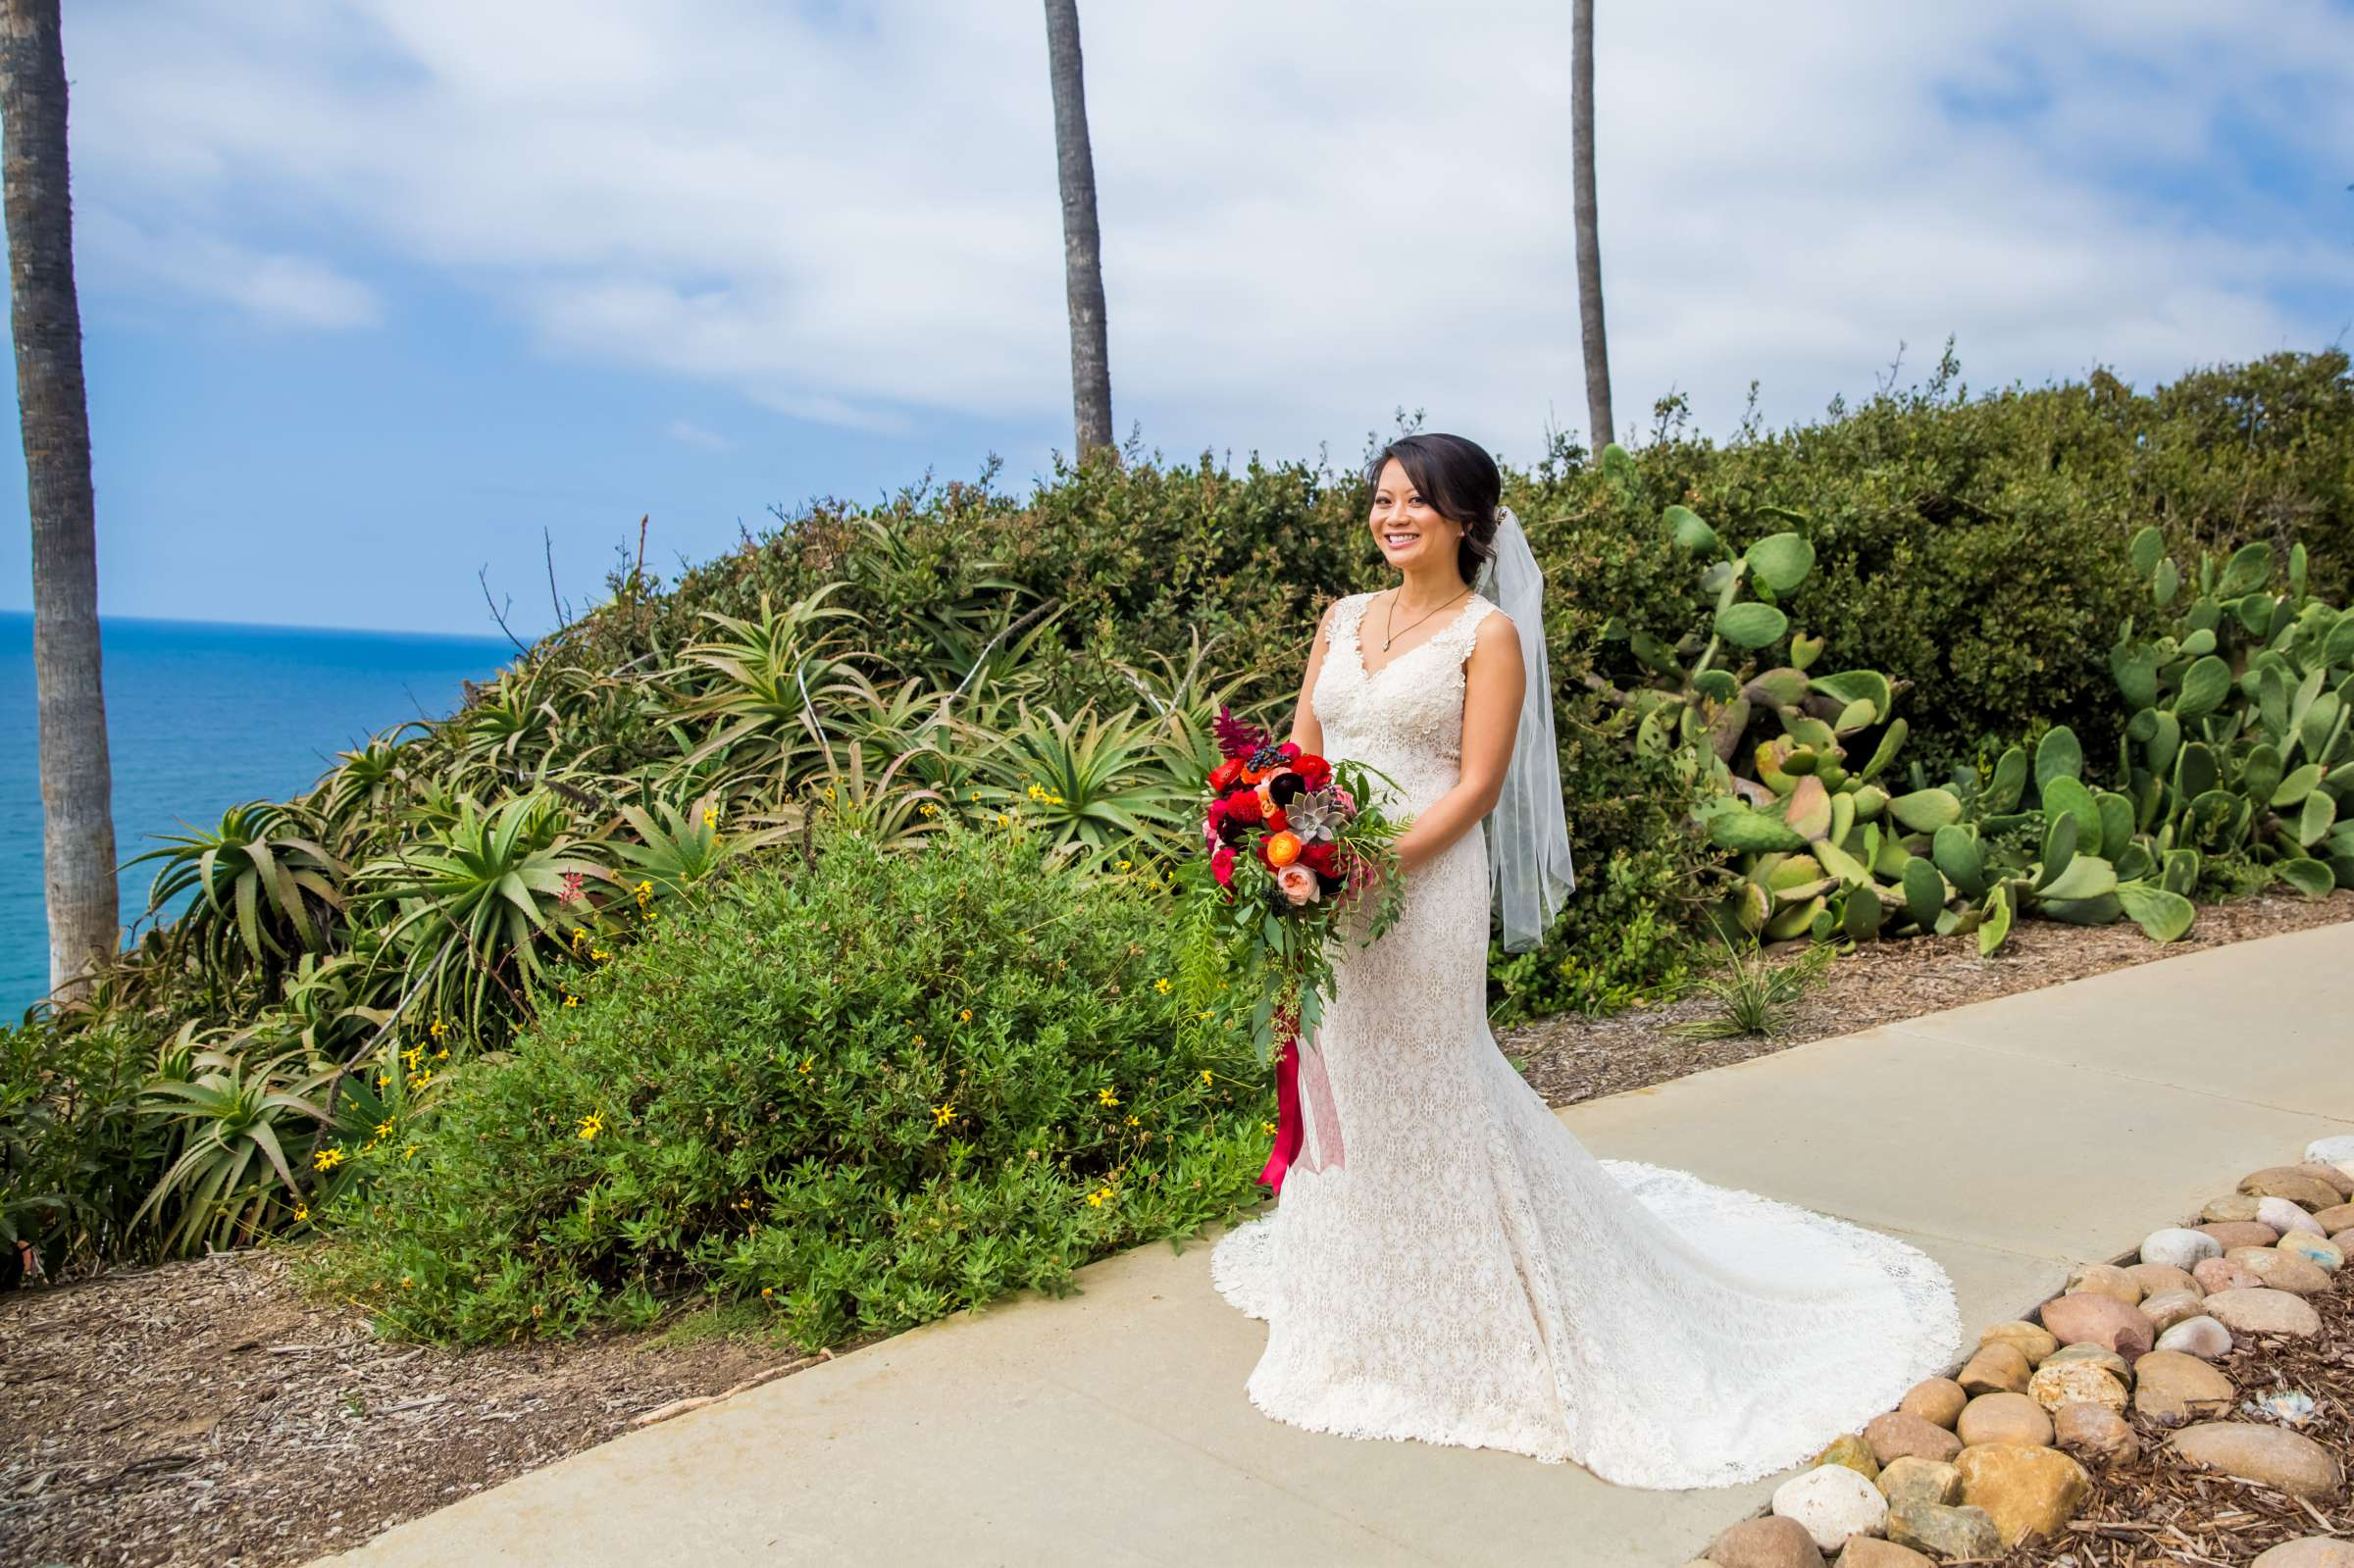 Griffin Mcelroy Wedding.Breezy Day Weddings San Diego Photographer True Photography